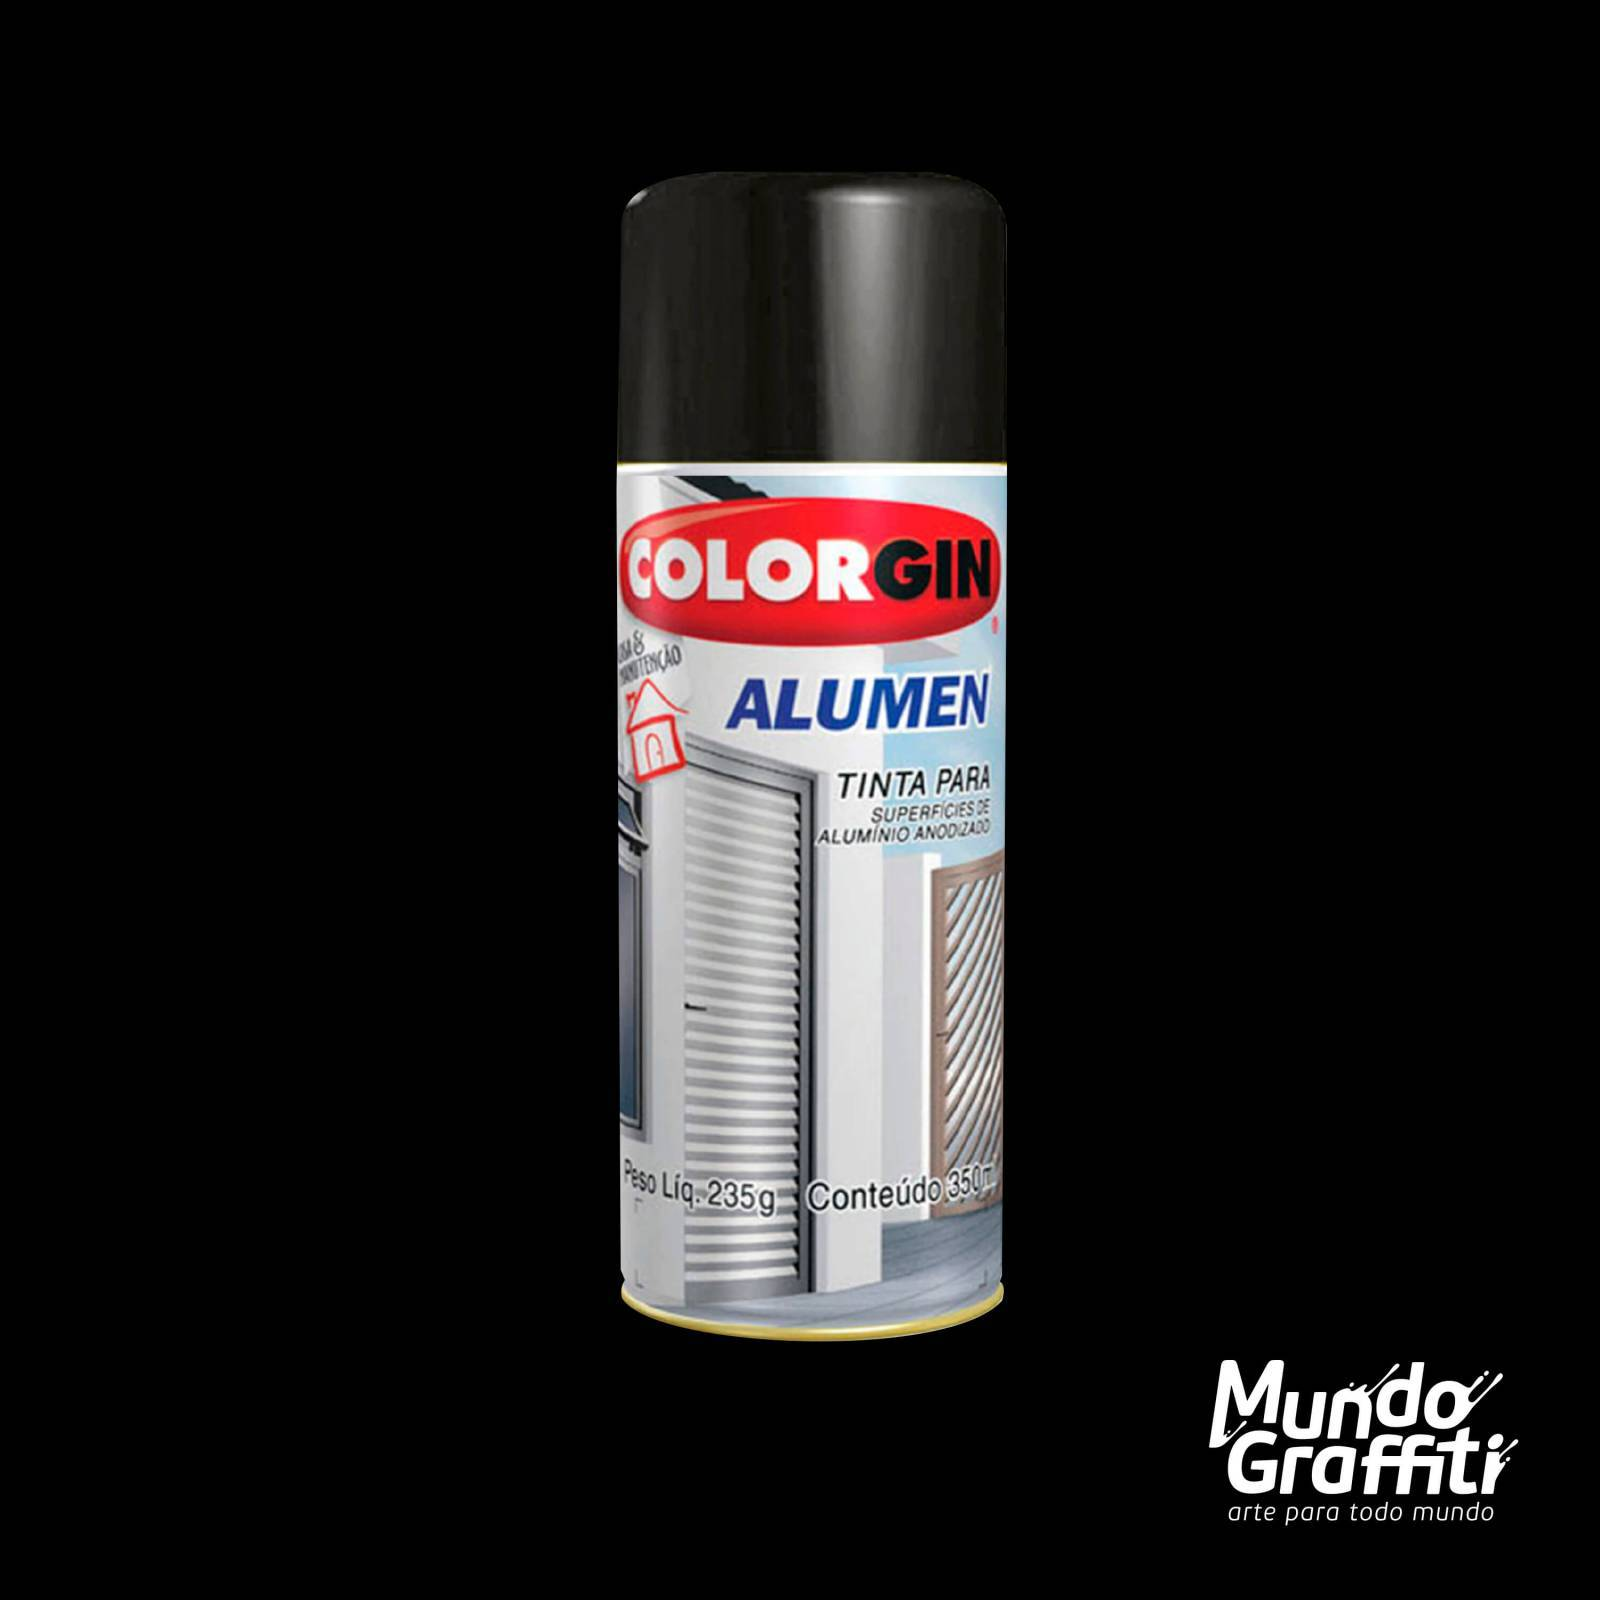 Tinta Spray Colorgin Alumen 773 Preto Fosco 350ml - Mundo Graffiti